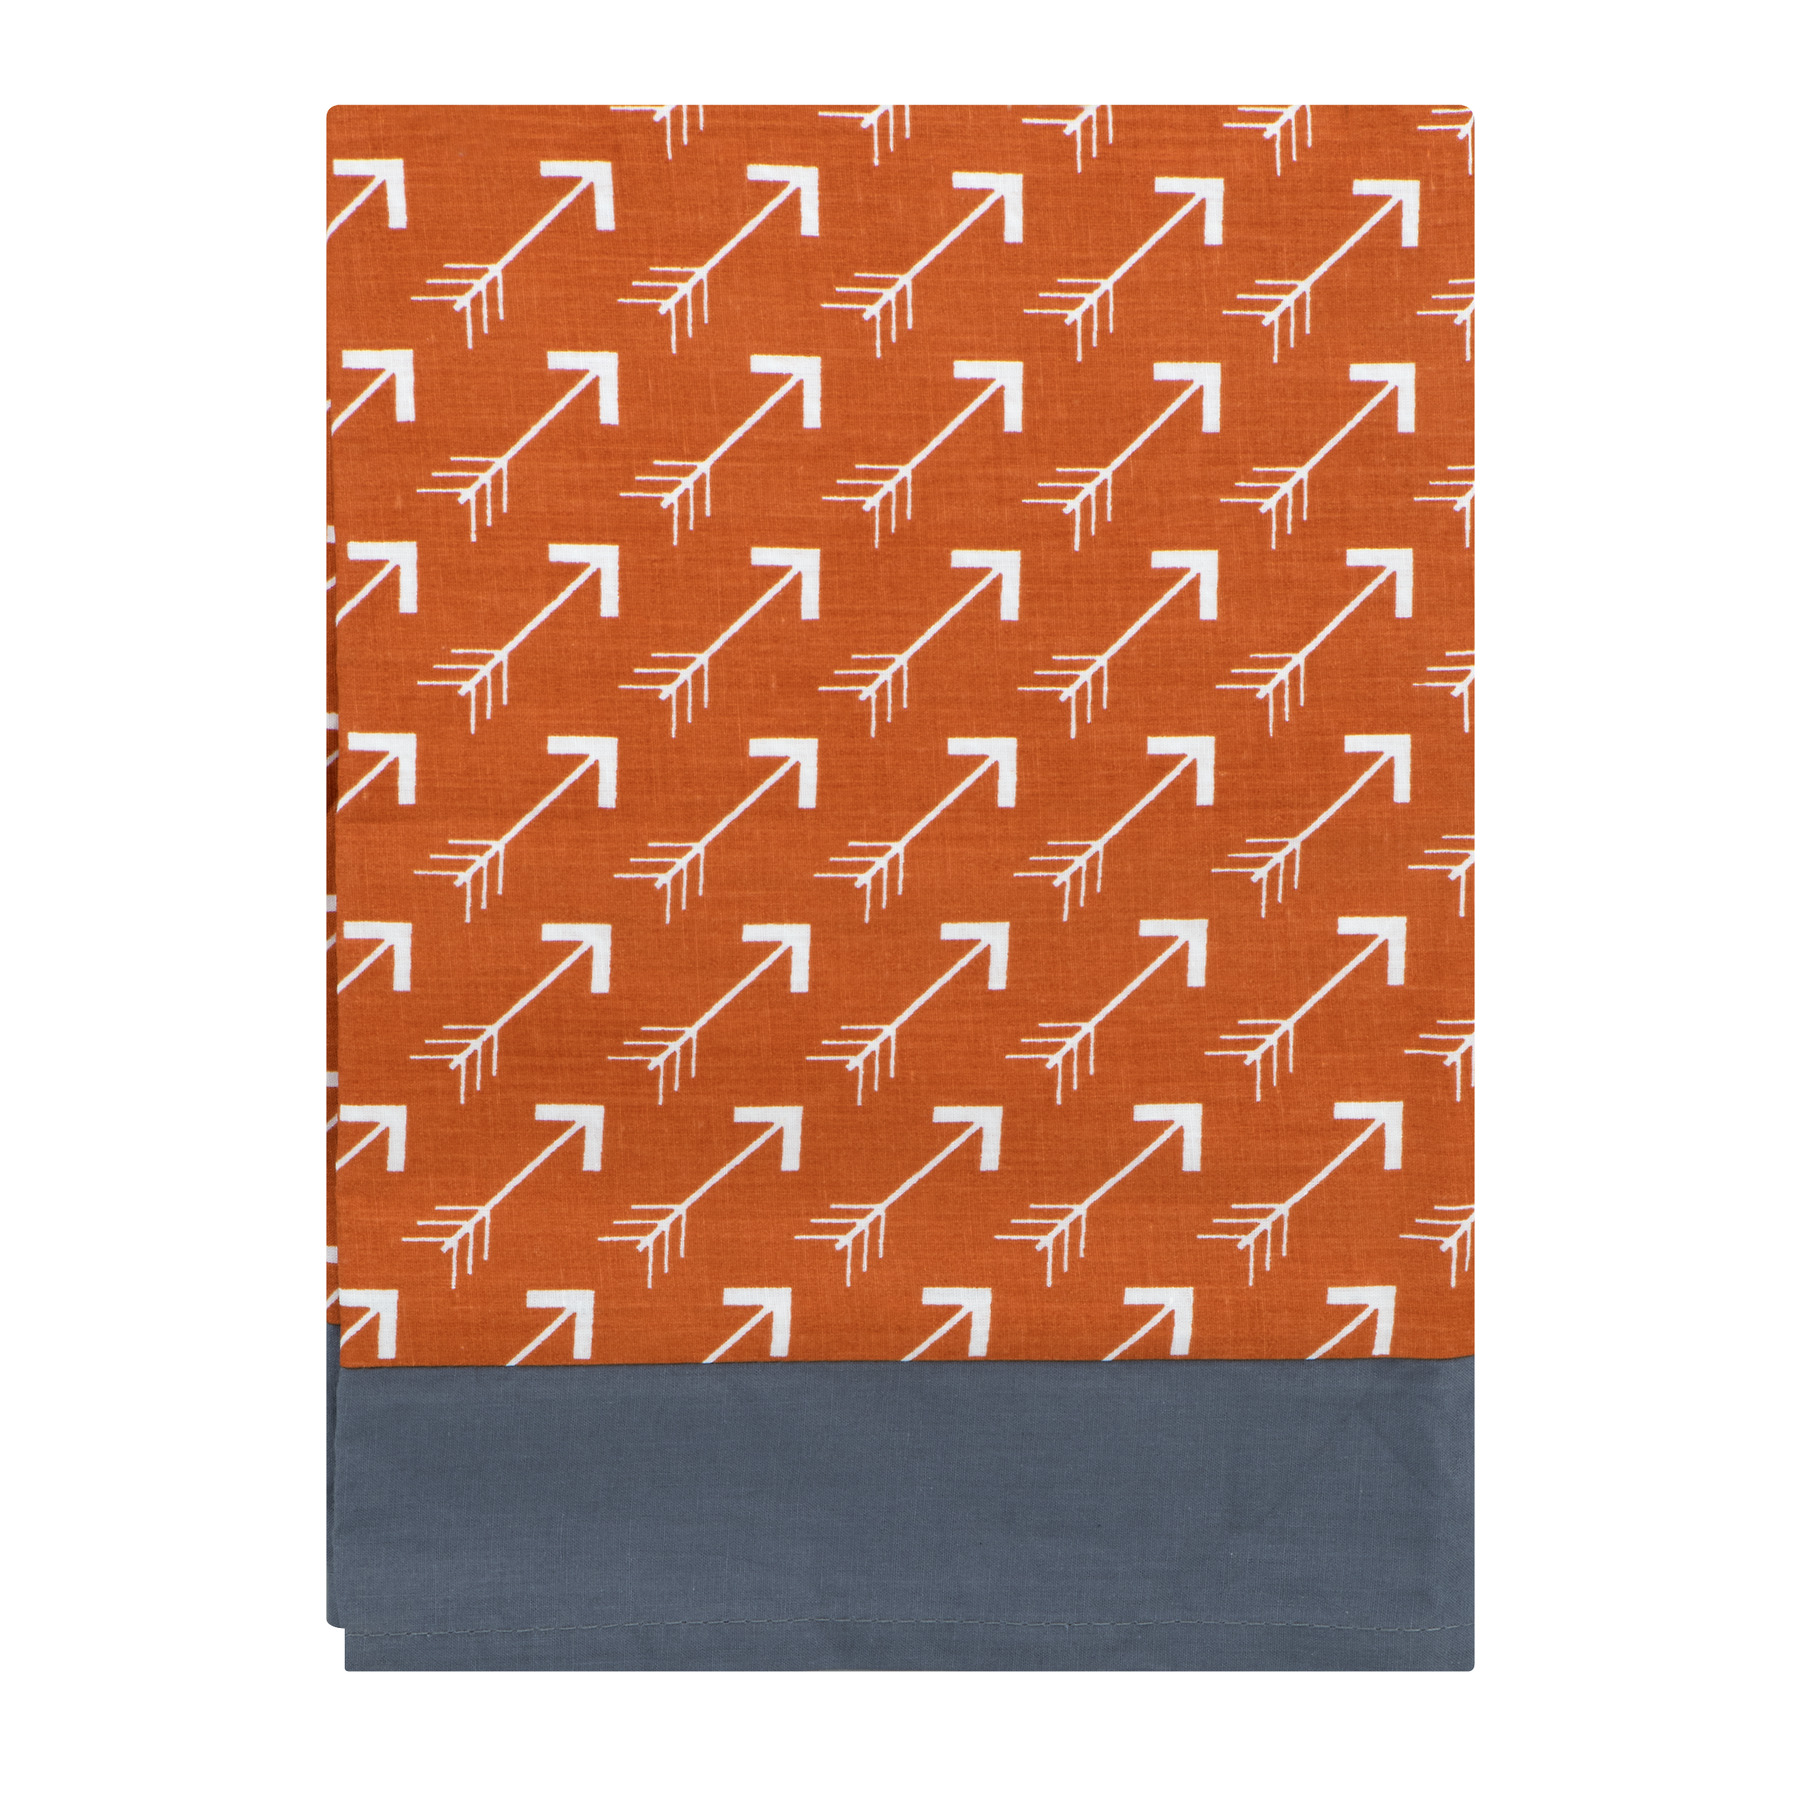 Bacati Window Valance Orange Grey Playful Fox, 1.0 CT by Bacati